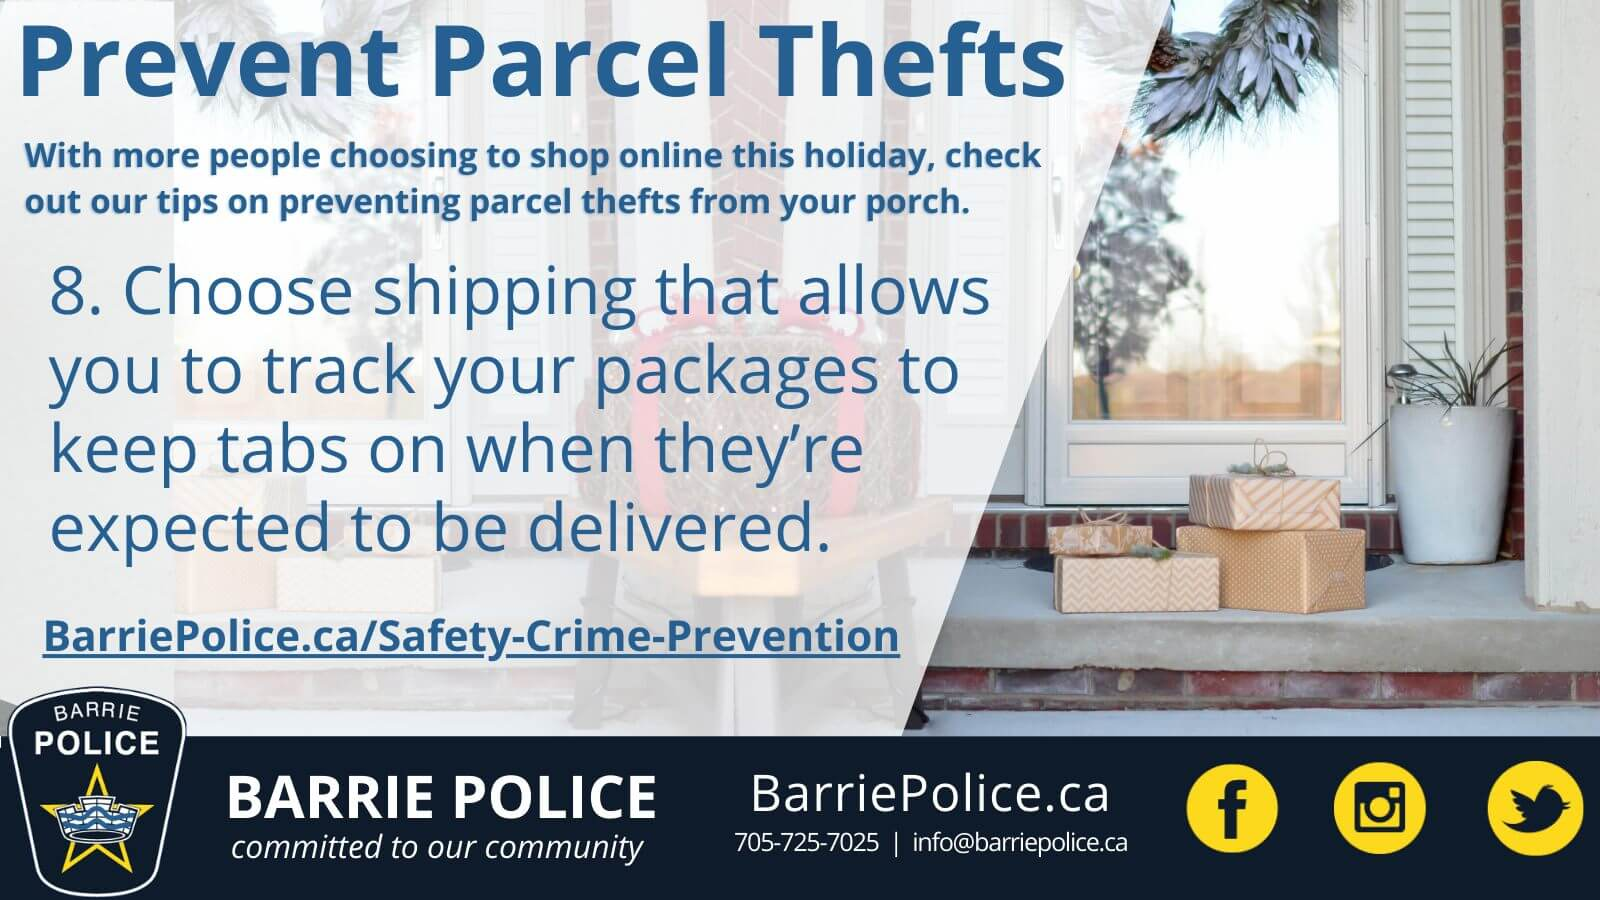 Prevent Parcel Thefts Tip 8: Track packages and expected delivery